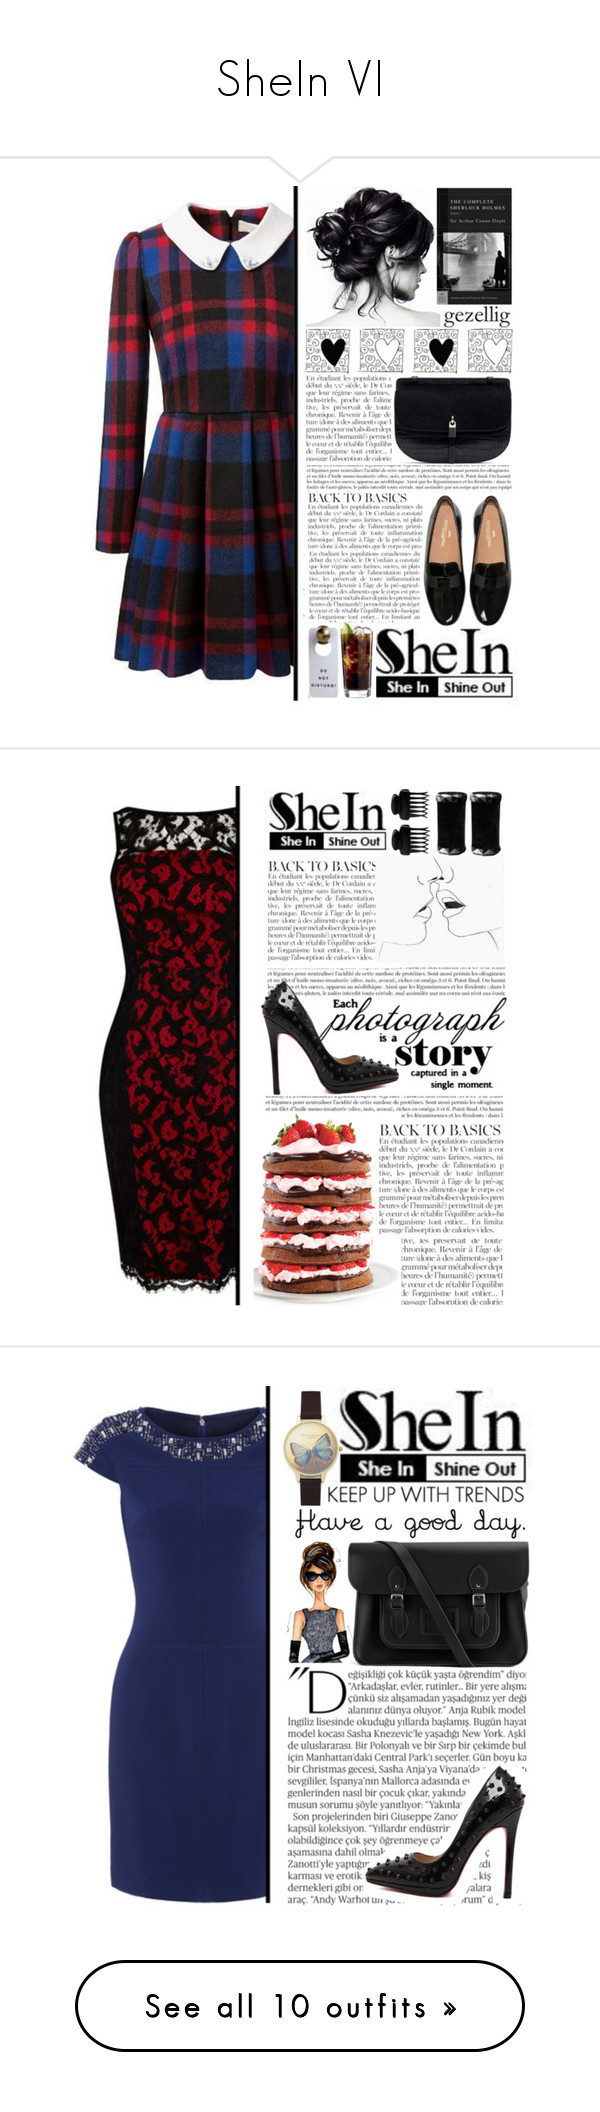 """SheIn VI"" by selmagorath ❤ liked on Polyvore featuring Sheinside, shein, Anja, Wilton, T3, Balmain, The Cambridge Satchel Company, Olivia Burton, Erdem and Del Gatto"